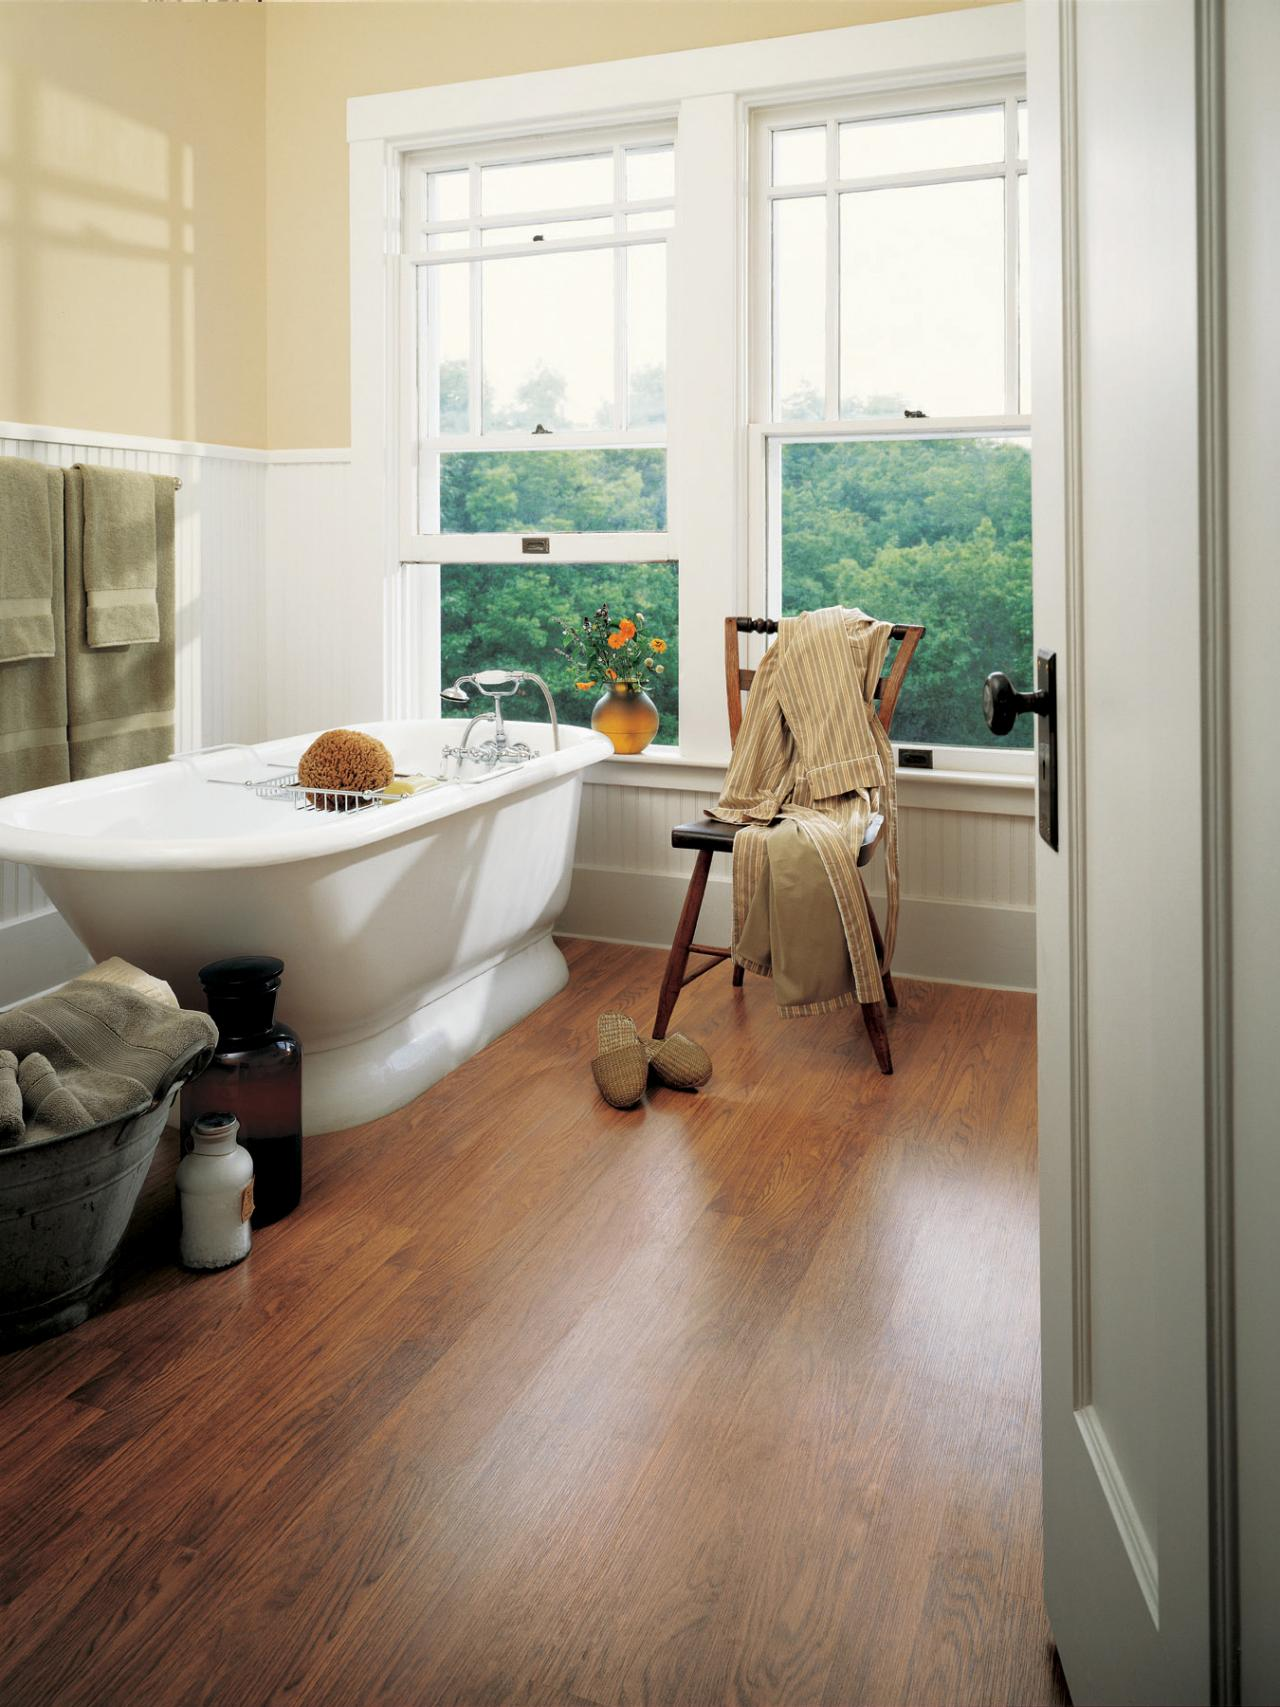 Choosing bathroom flooring hgtv - Laminate tiles for bathroom walls ...